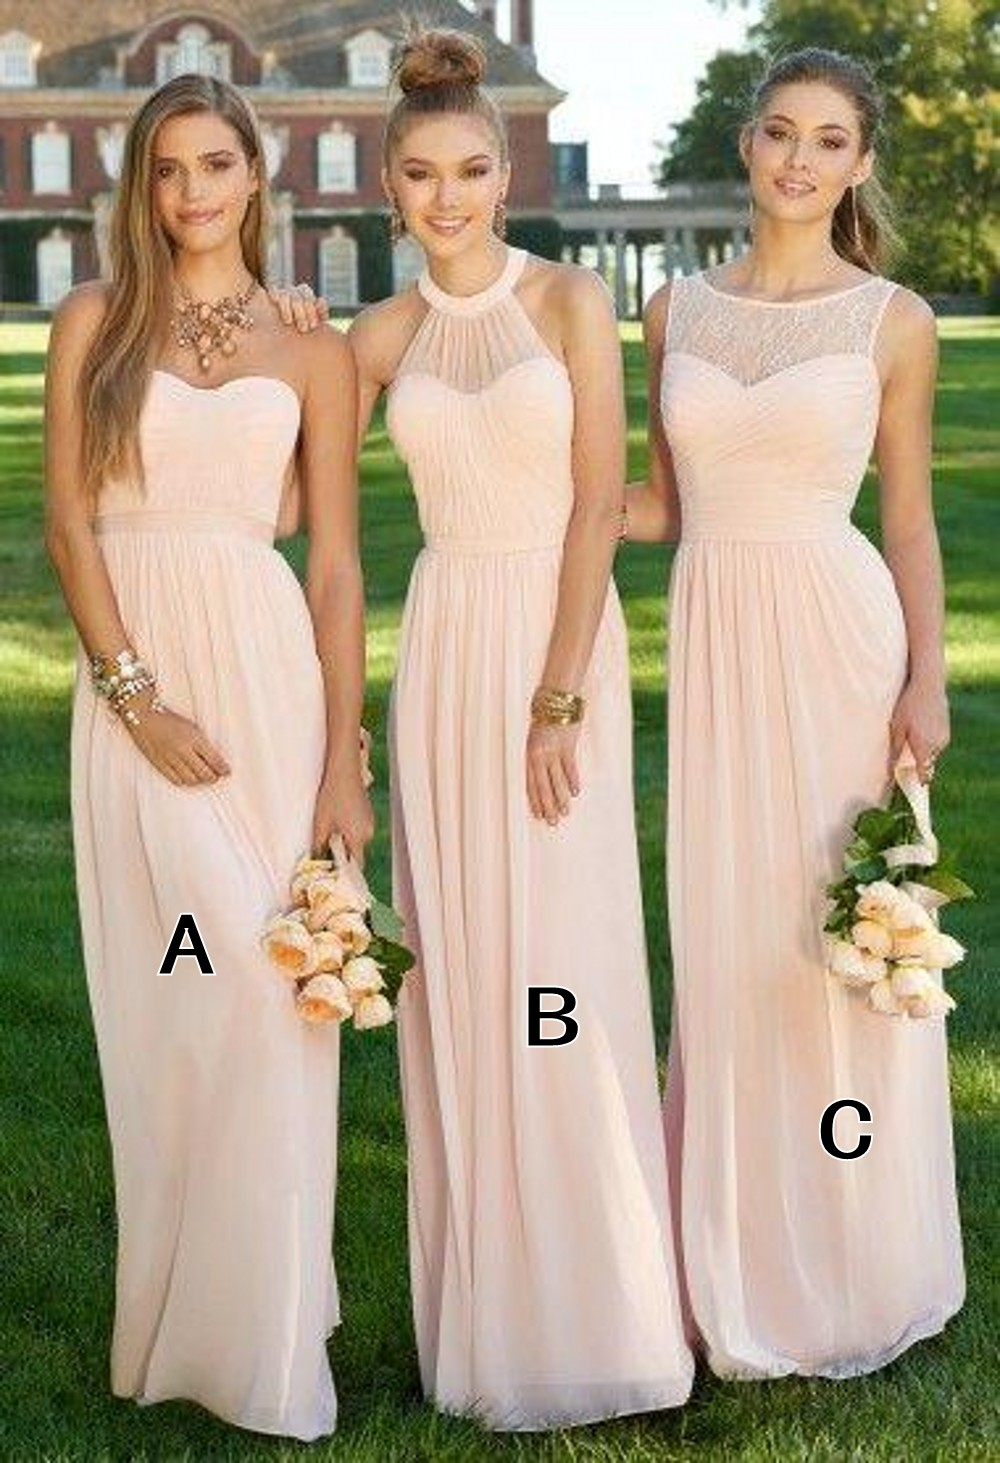 Vintage themed bridesmaid dresses images braidsmaid dress compare prices on vintage style bridesmaid online shoppingbuy h007 champagne simple chiffon three styles bridesmaid dresses ombrellifo Gallery